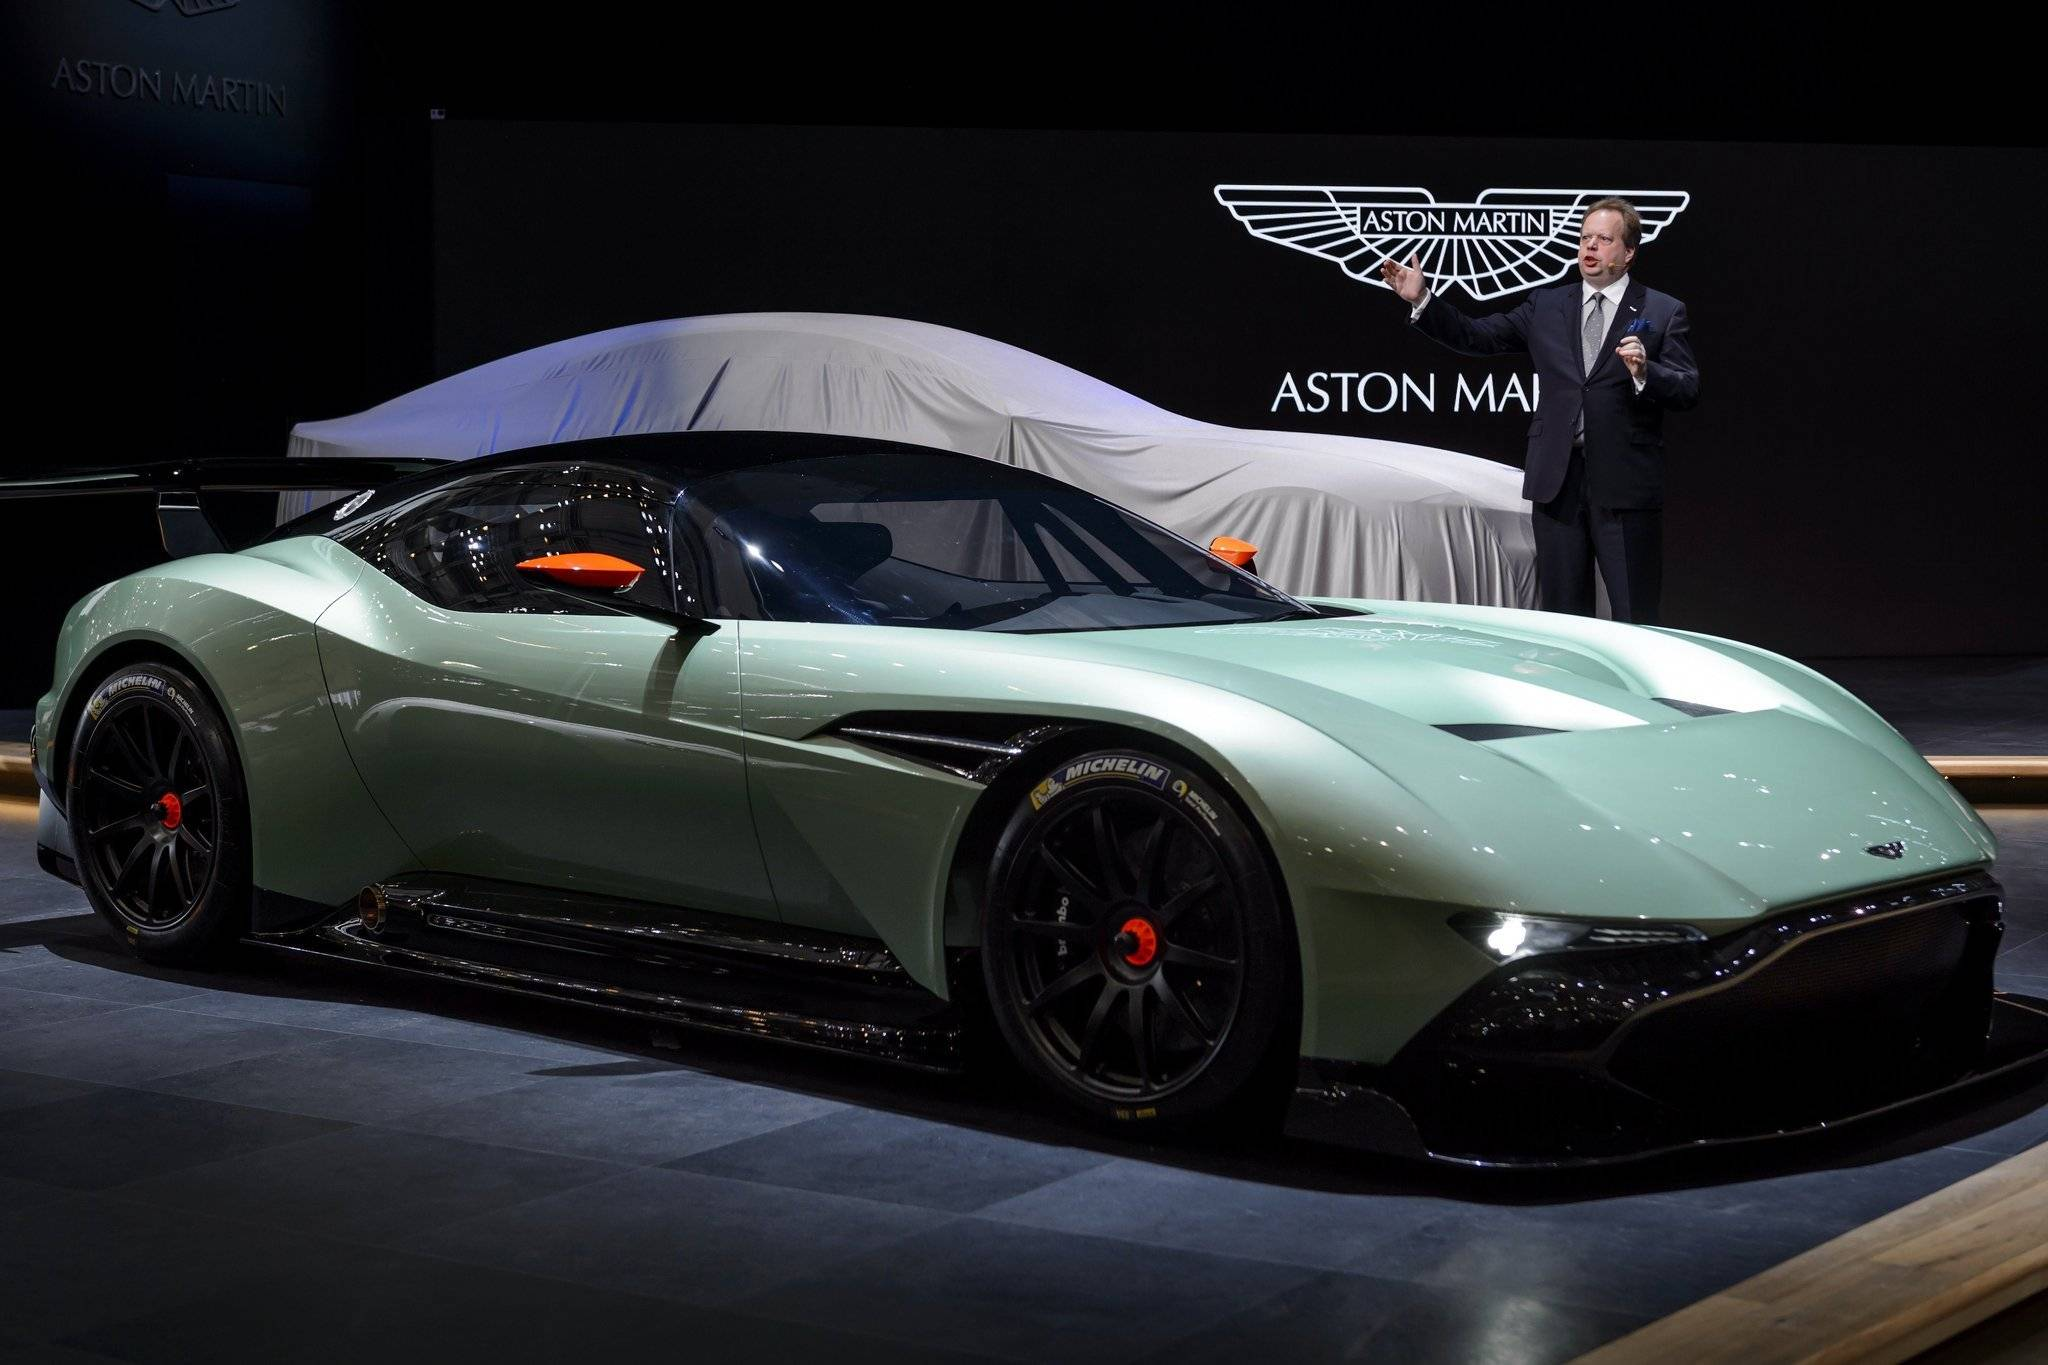 2015 Aston Martin Vulcan Specifications